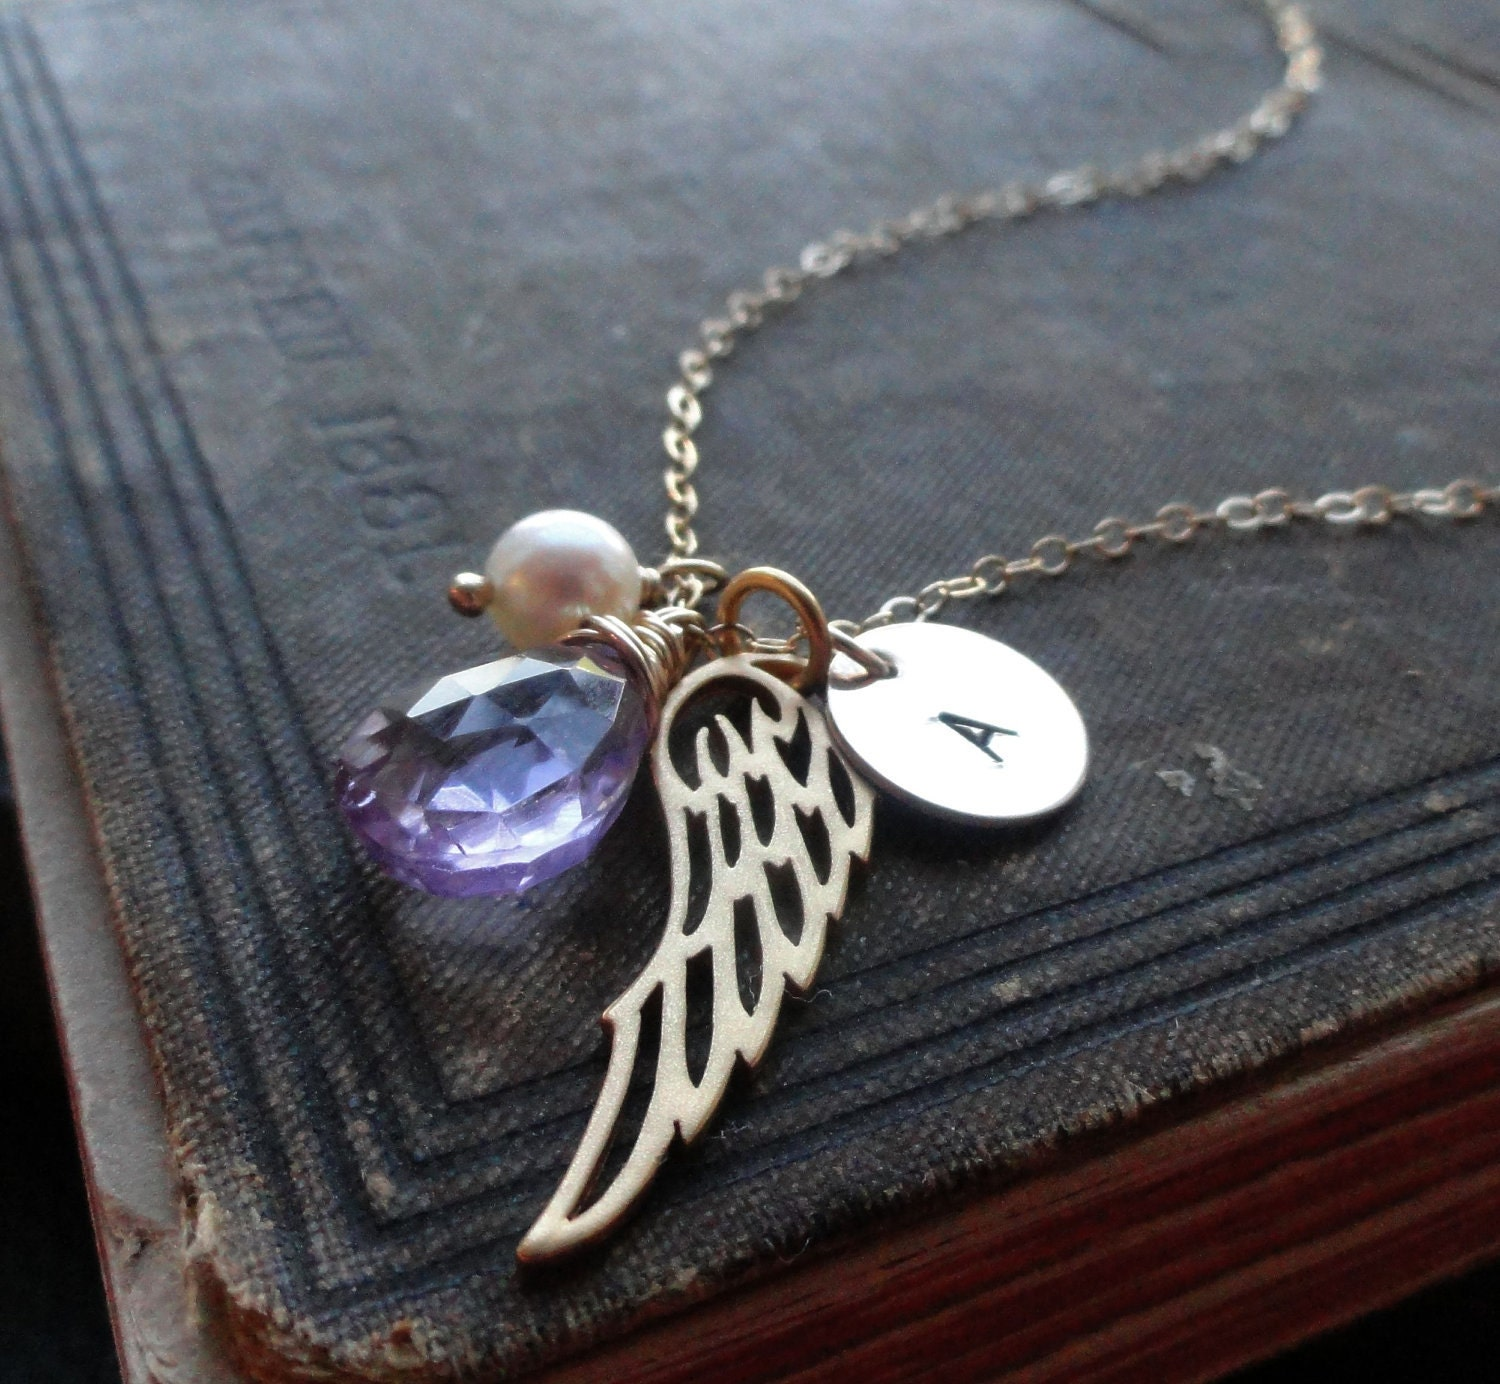 Custom personalized jewelry, gold angel wing necklace with birthstone and initial necklace, personalized birthstone necklace